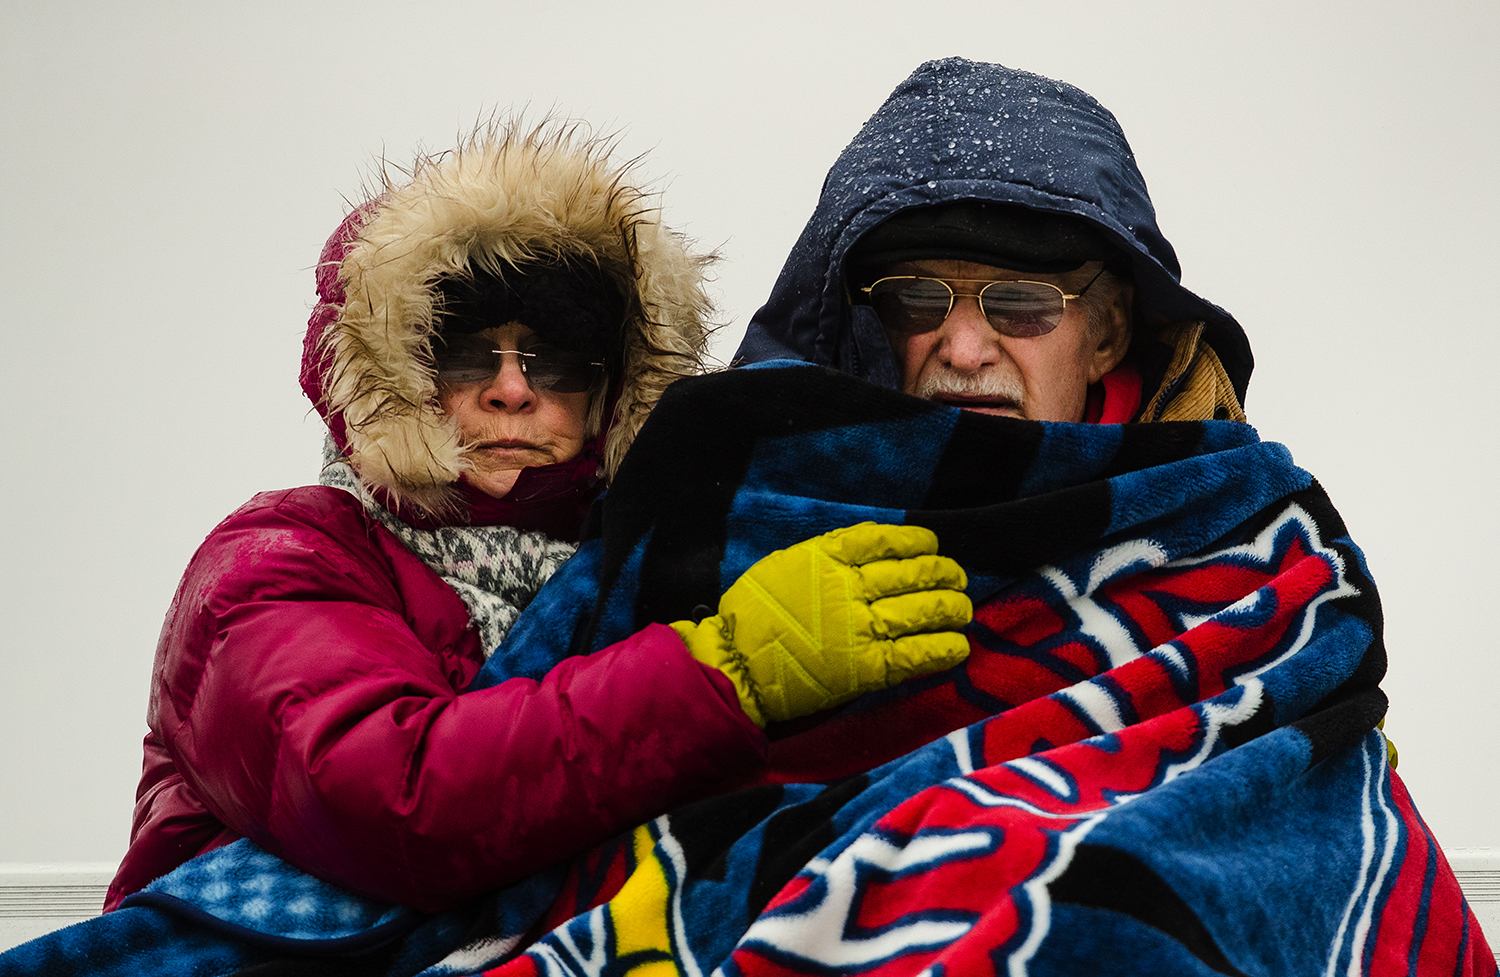 Athens fans bundled up against the cold and rain for the opening kick off of the IHSA Class 1A football semifinal game at the Athens Sports Complex Saturday, Nov. 18, 2017. [Ted Schurter/The State Journal-Register]